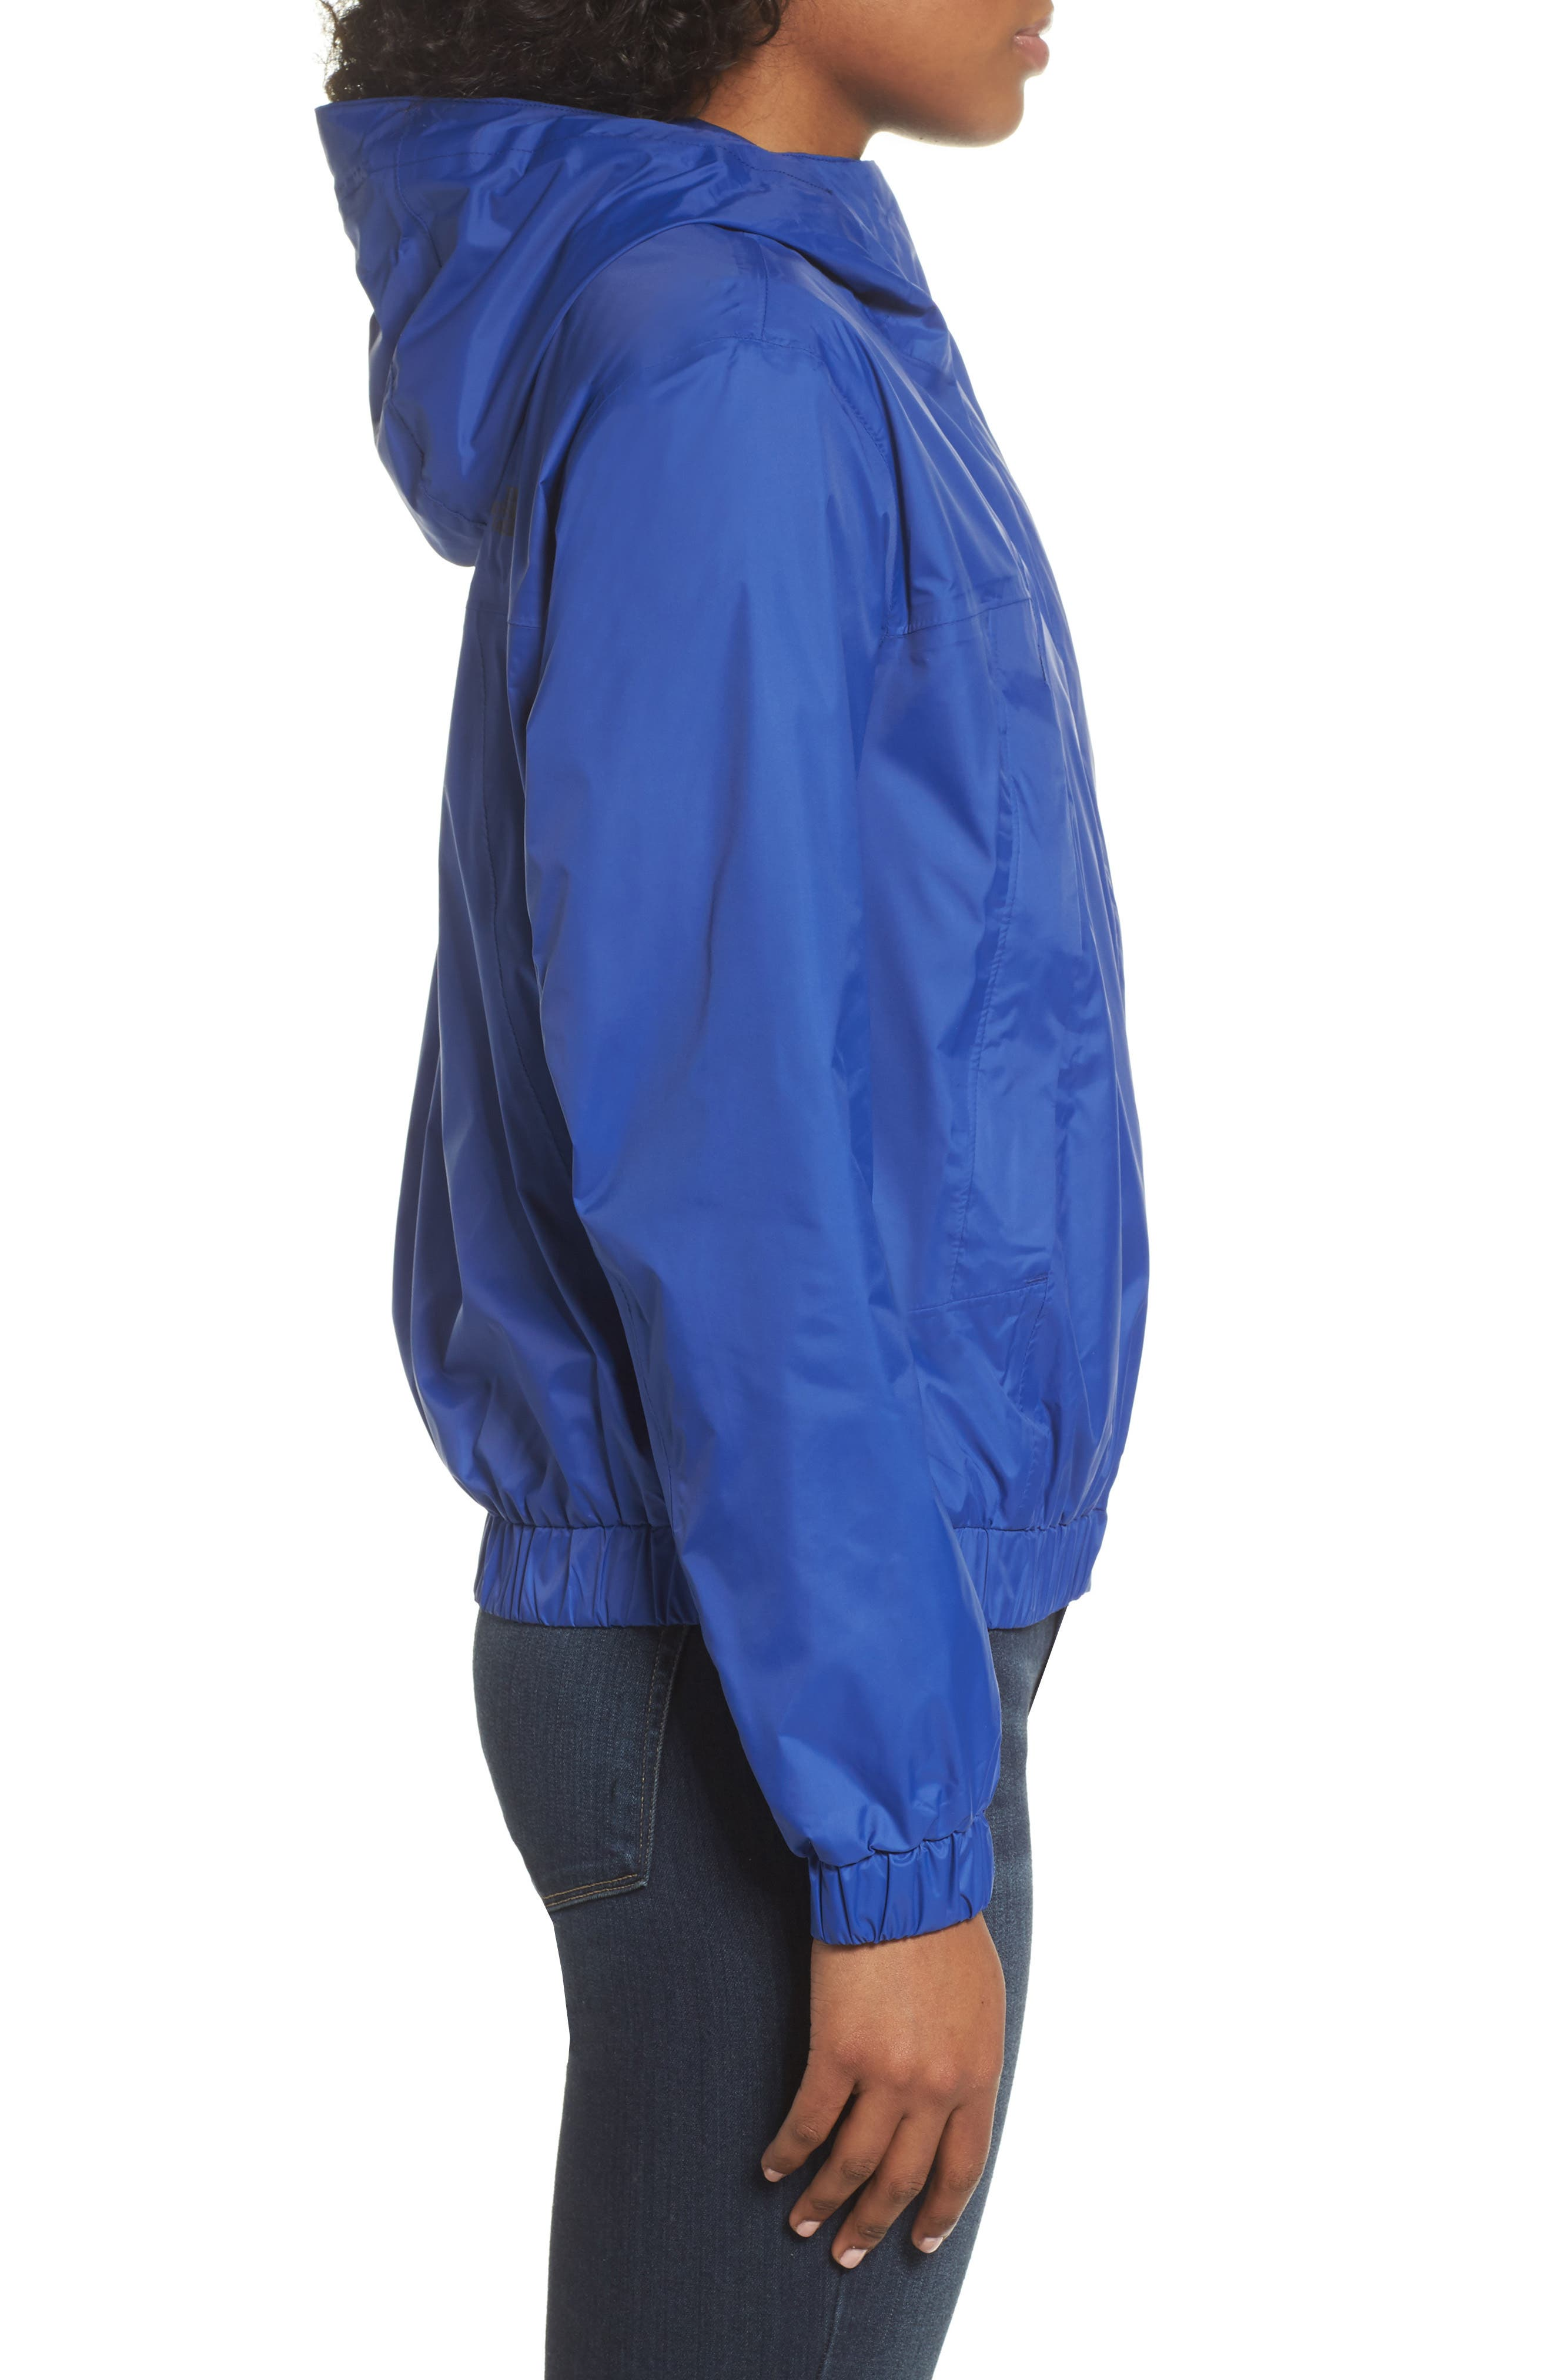 Precita Rain Jacket,                             Alternate thumbnail 6, color,                             Sodalite Blue